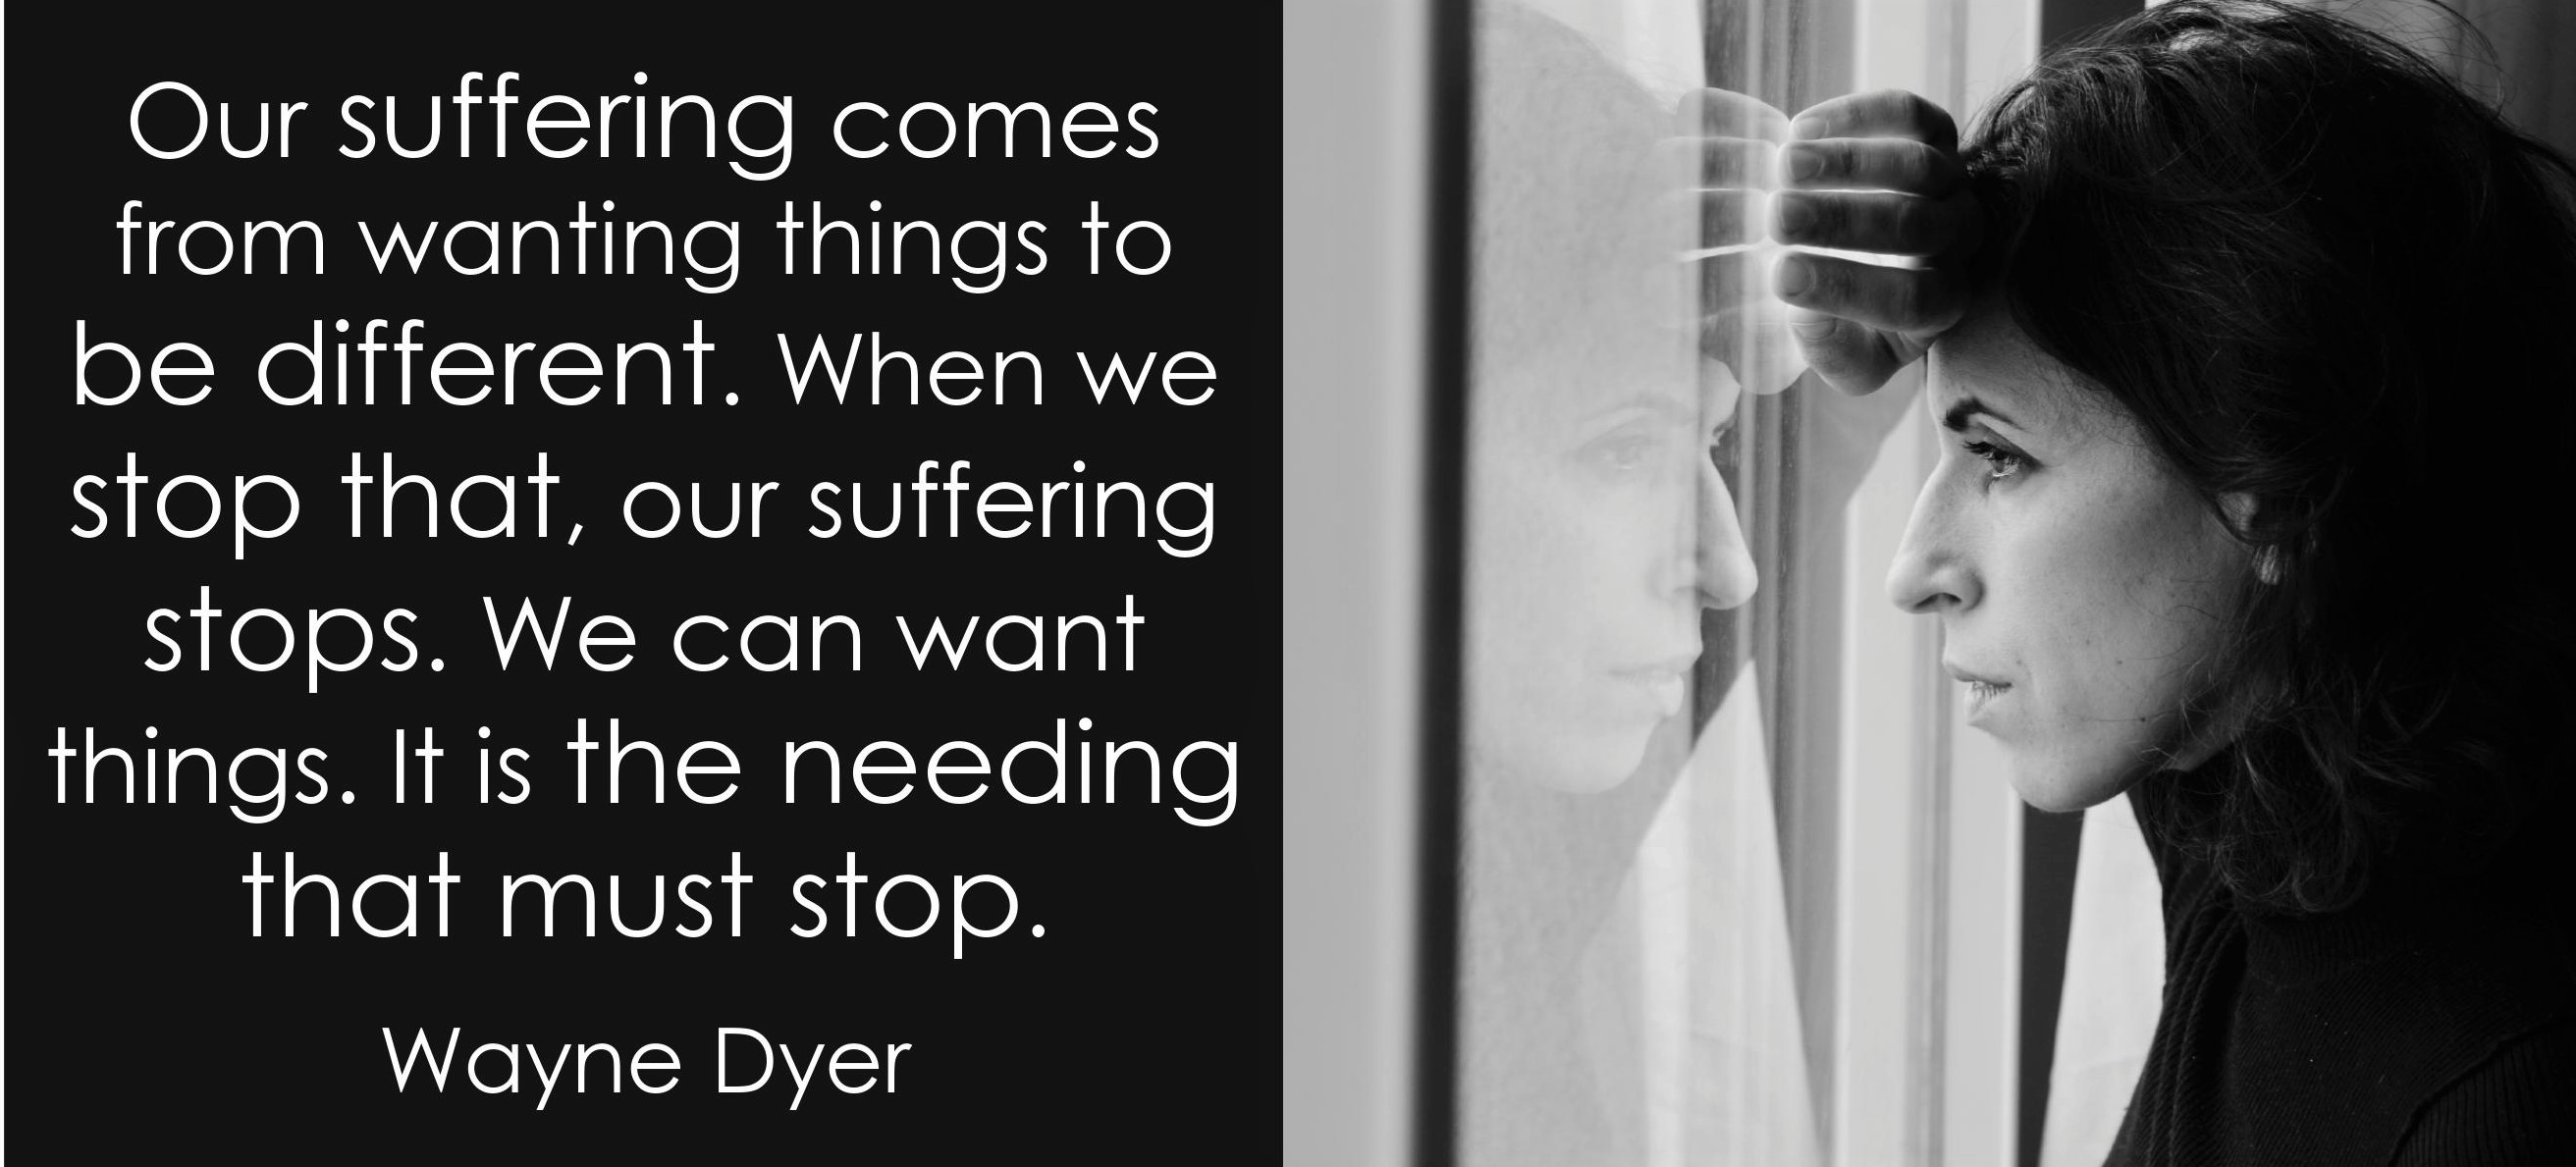 Our suffering comes from wanting things to be different